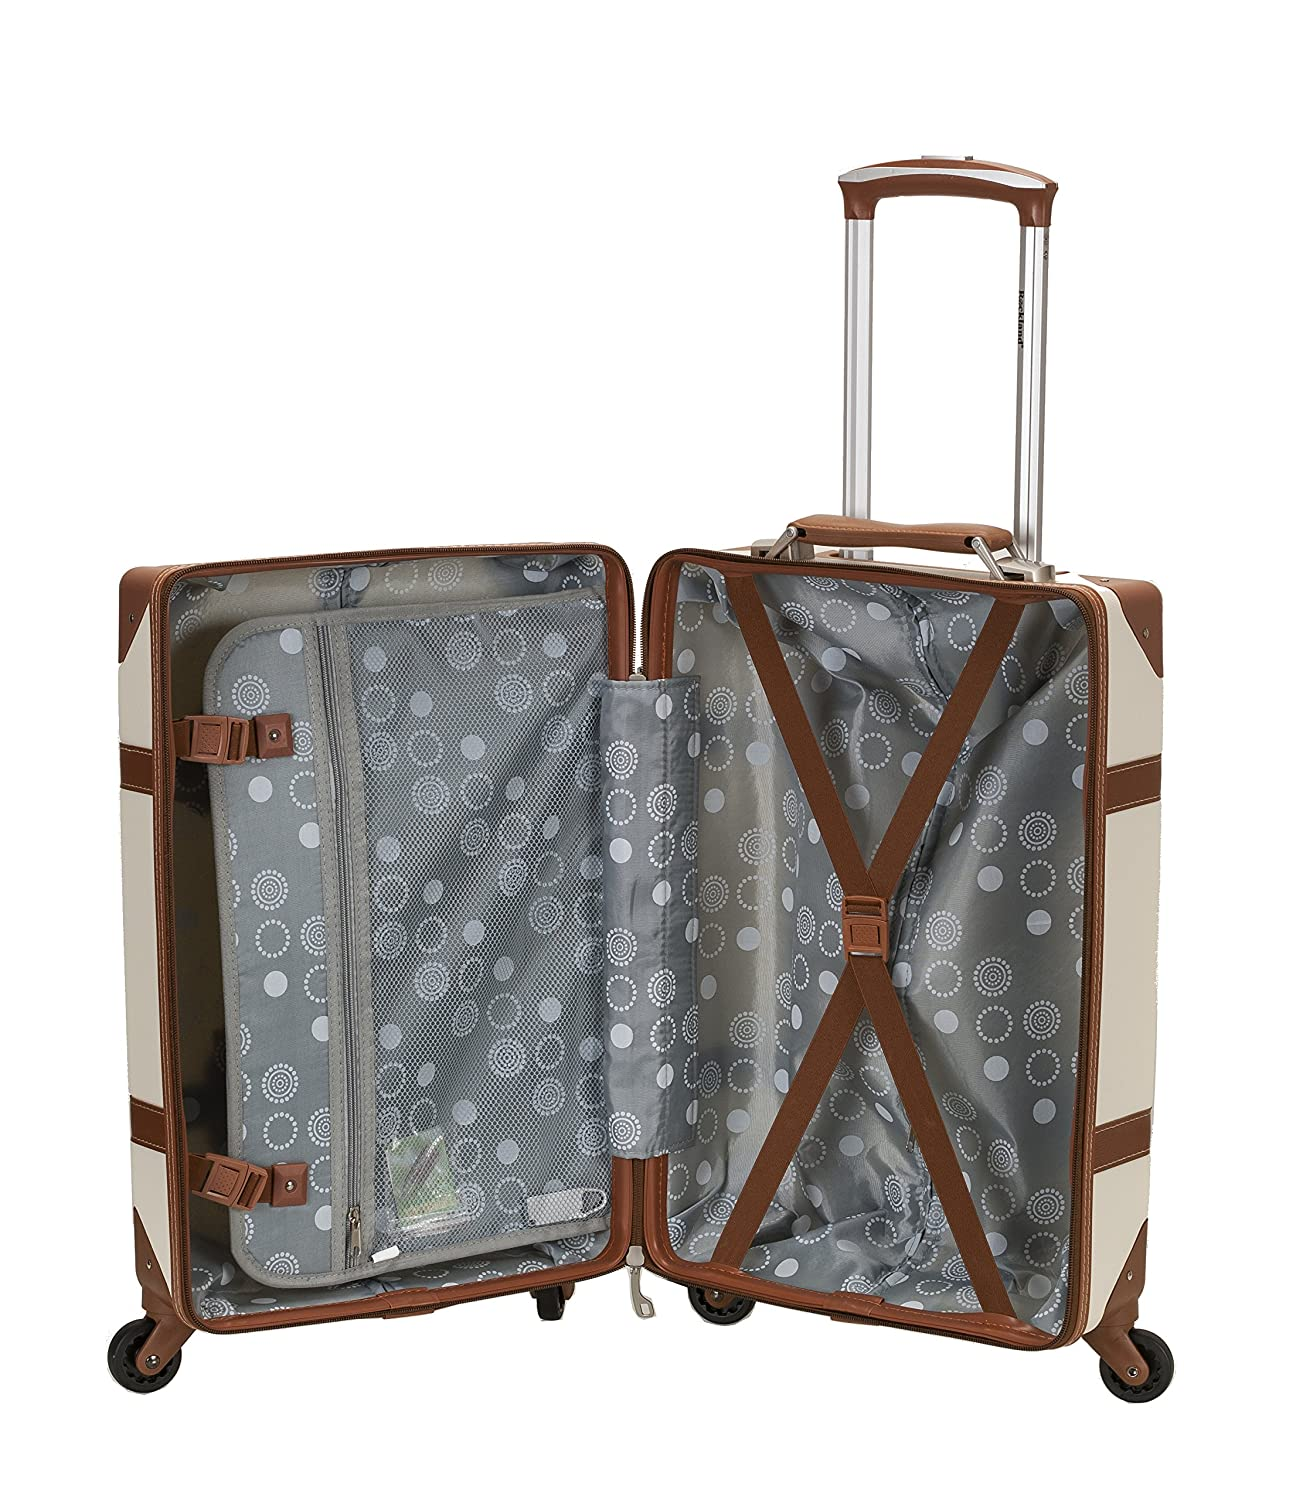 ... Signature Roseberry Peyton Travel Bag Duffle Suitcase Wheelie .  ROCKLAND Stage Coach 20 Inch Rolling Trunk 1d8583ceaa292